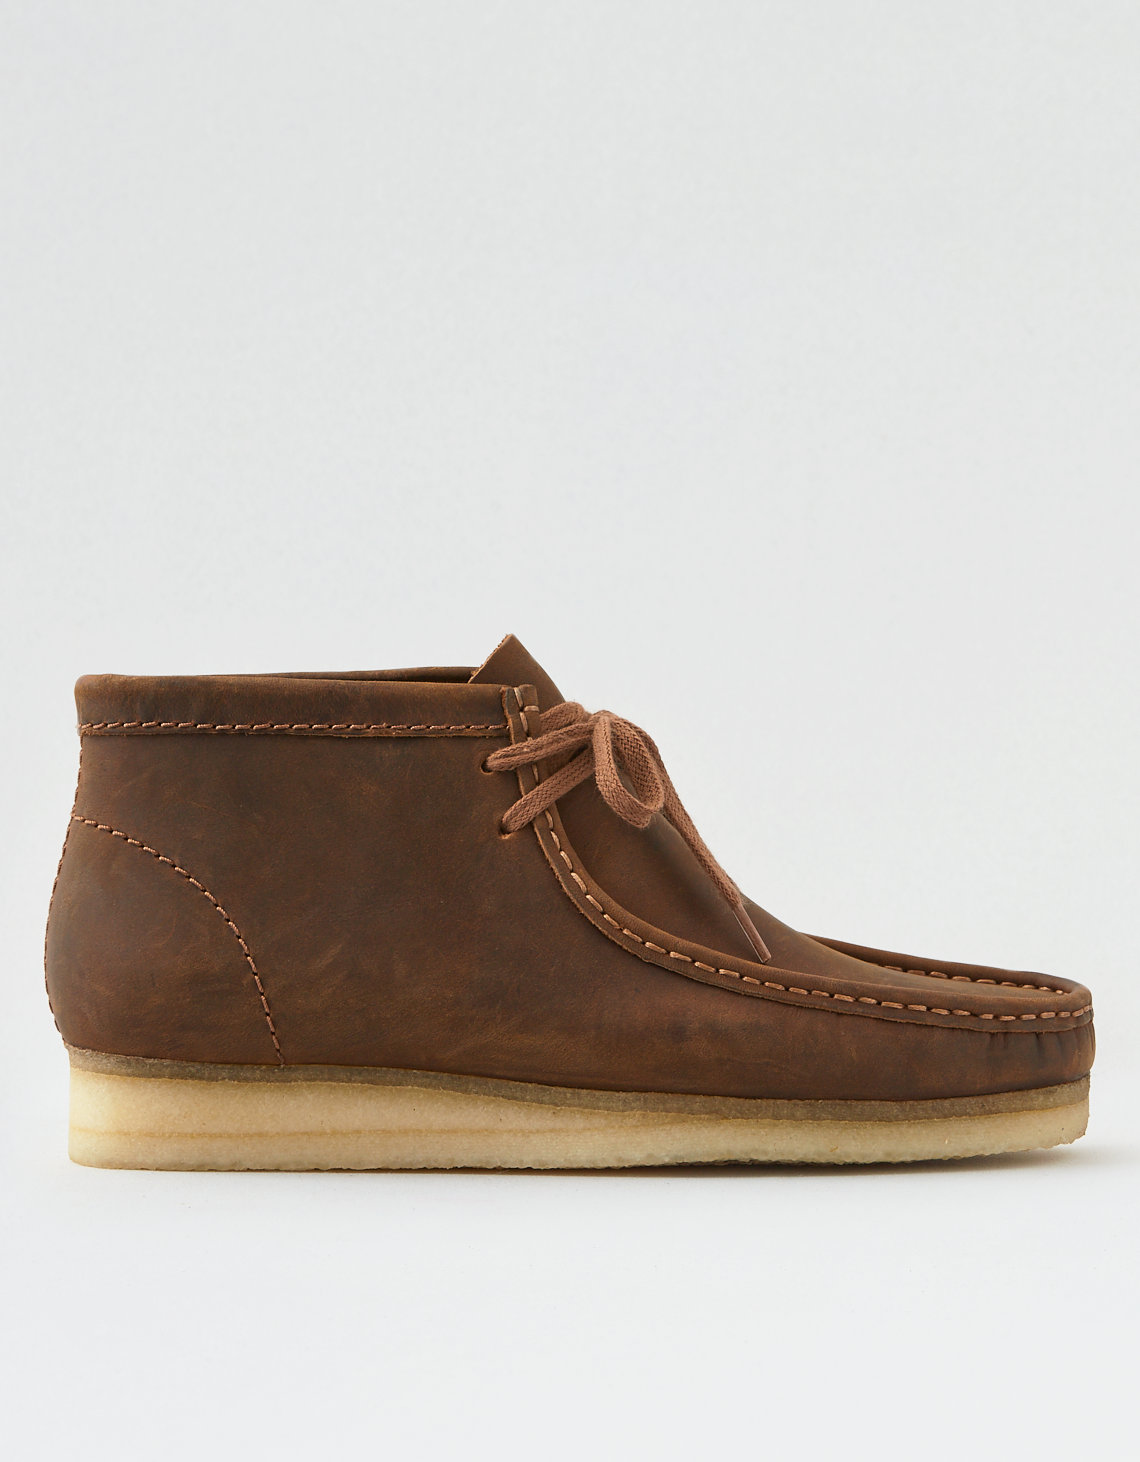 a94a25e936f36 Clarks Wallabee Boot. Placeholder image. Product Image